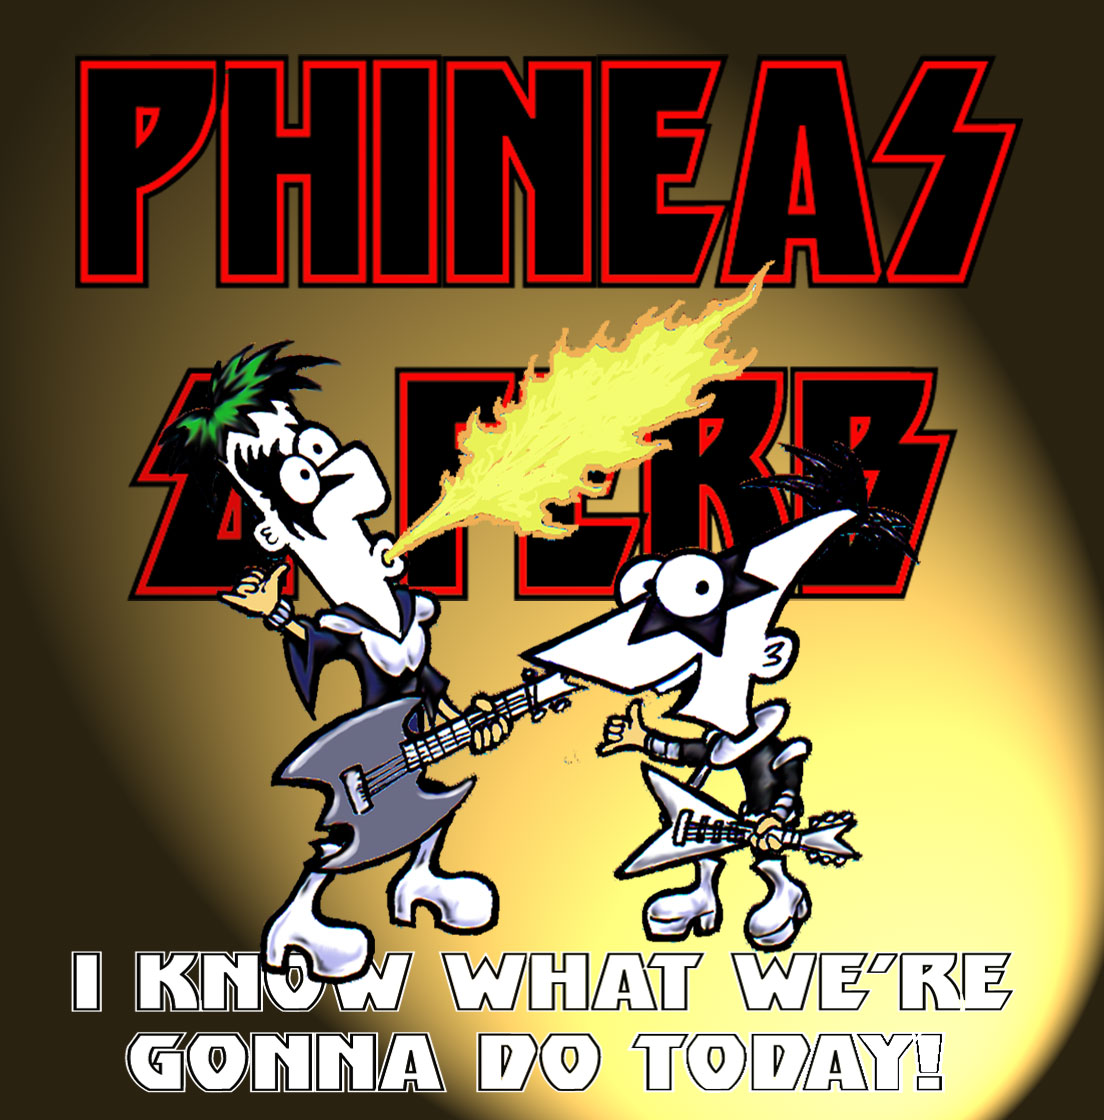 Phineas and Ferb as